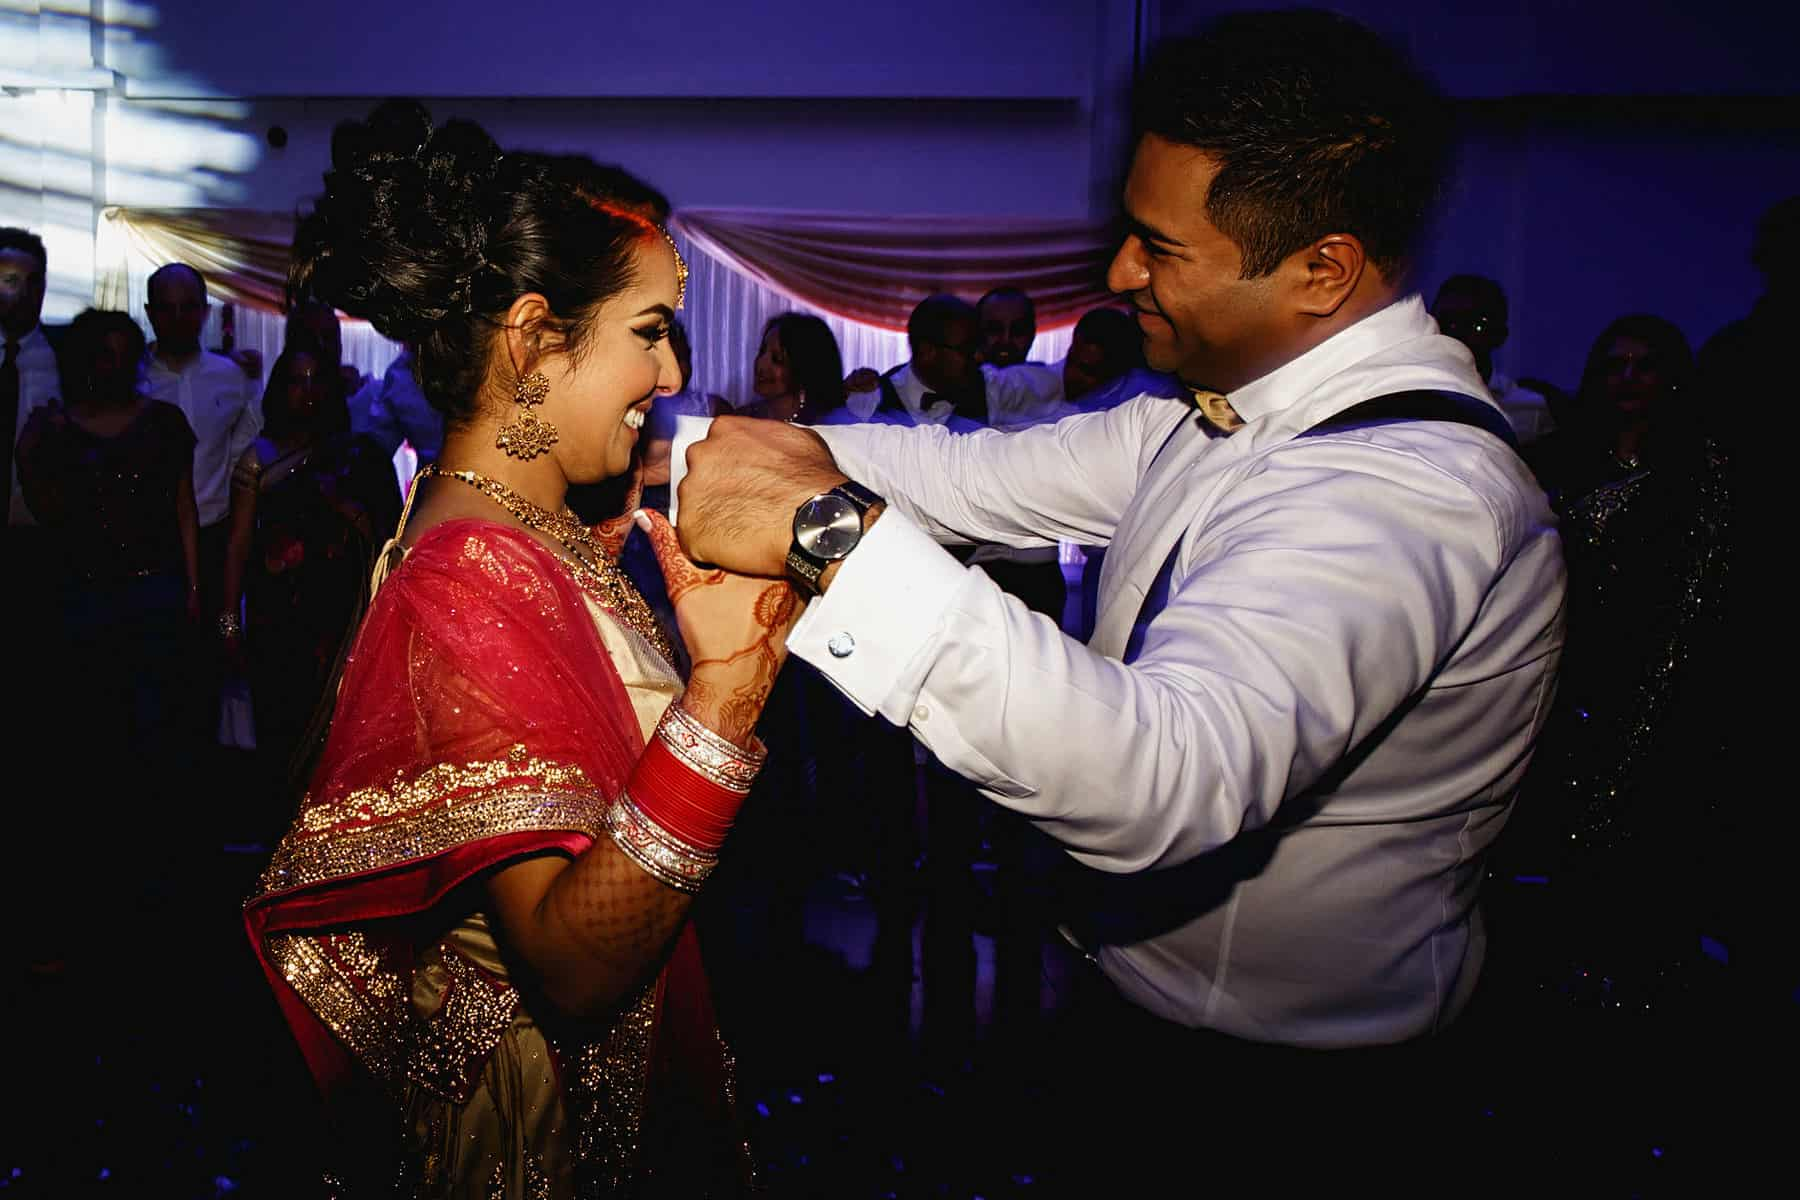 wales wedding hindu